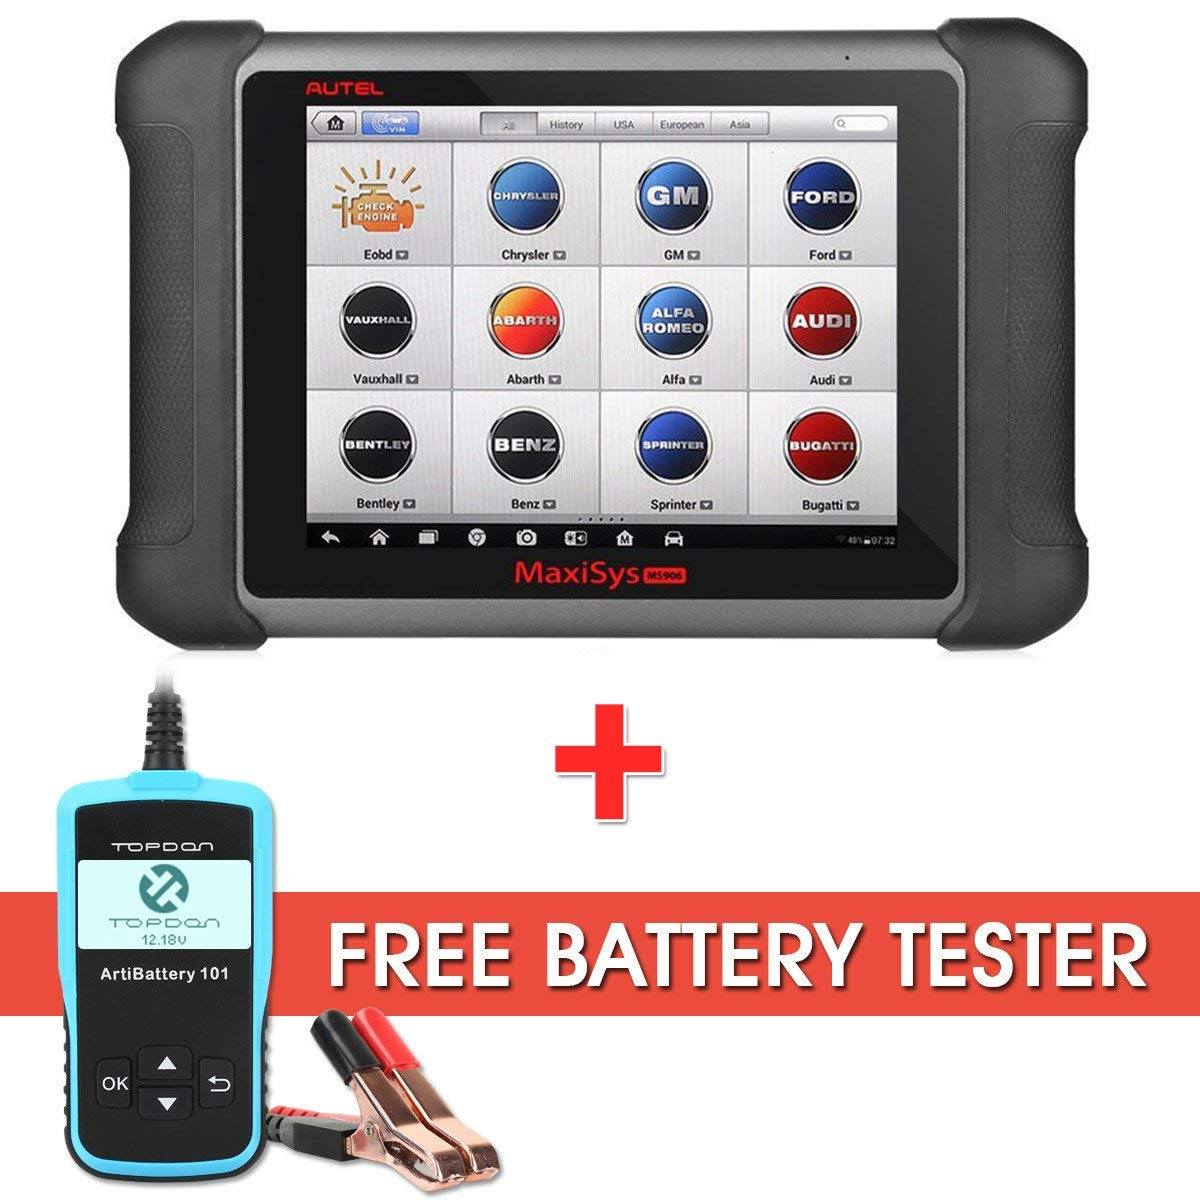 Autel Maxisys MS906 Diagnostic Scanner with OE-level Vehicle Coverage for Reading Erasing Codes, Actuation Tests, Adaptations with Free Battery Tester